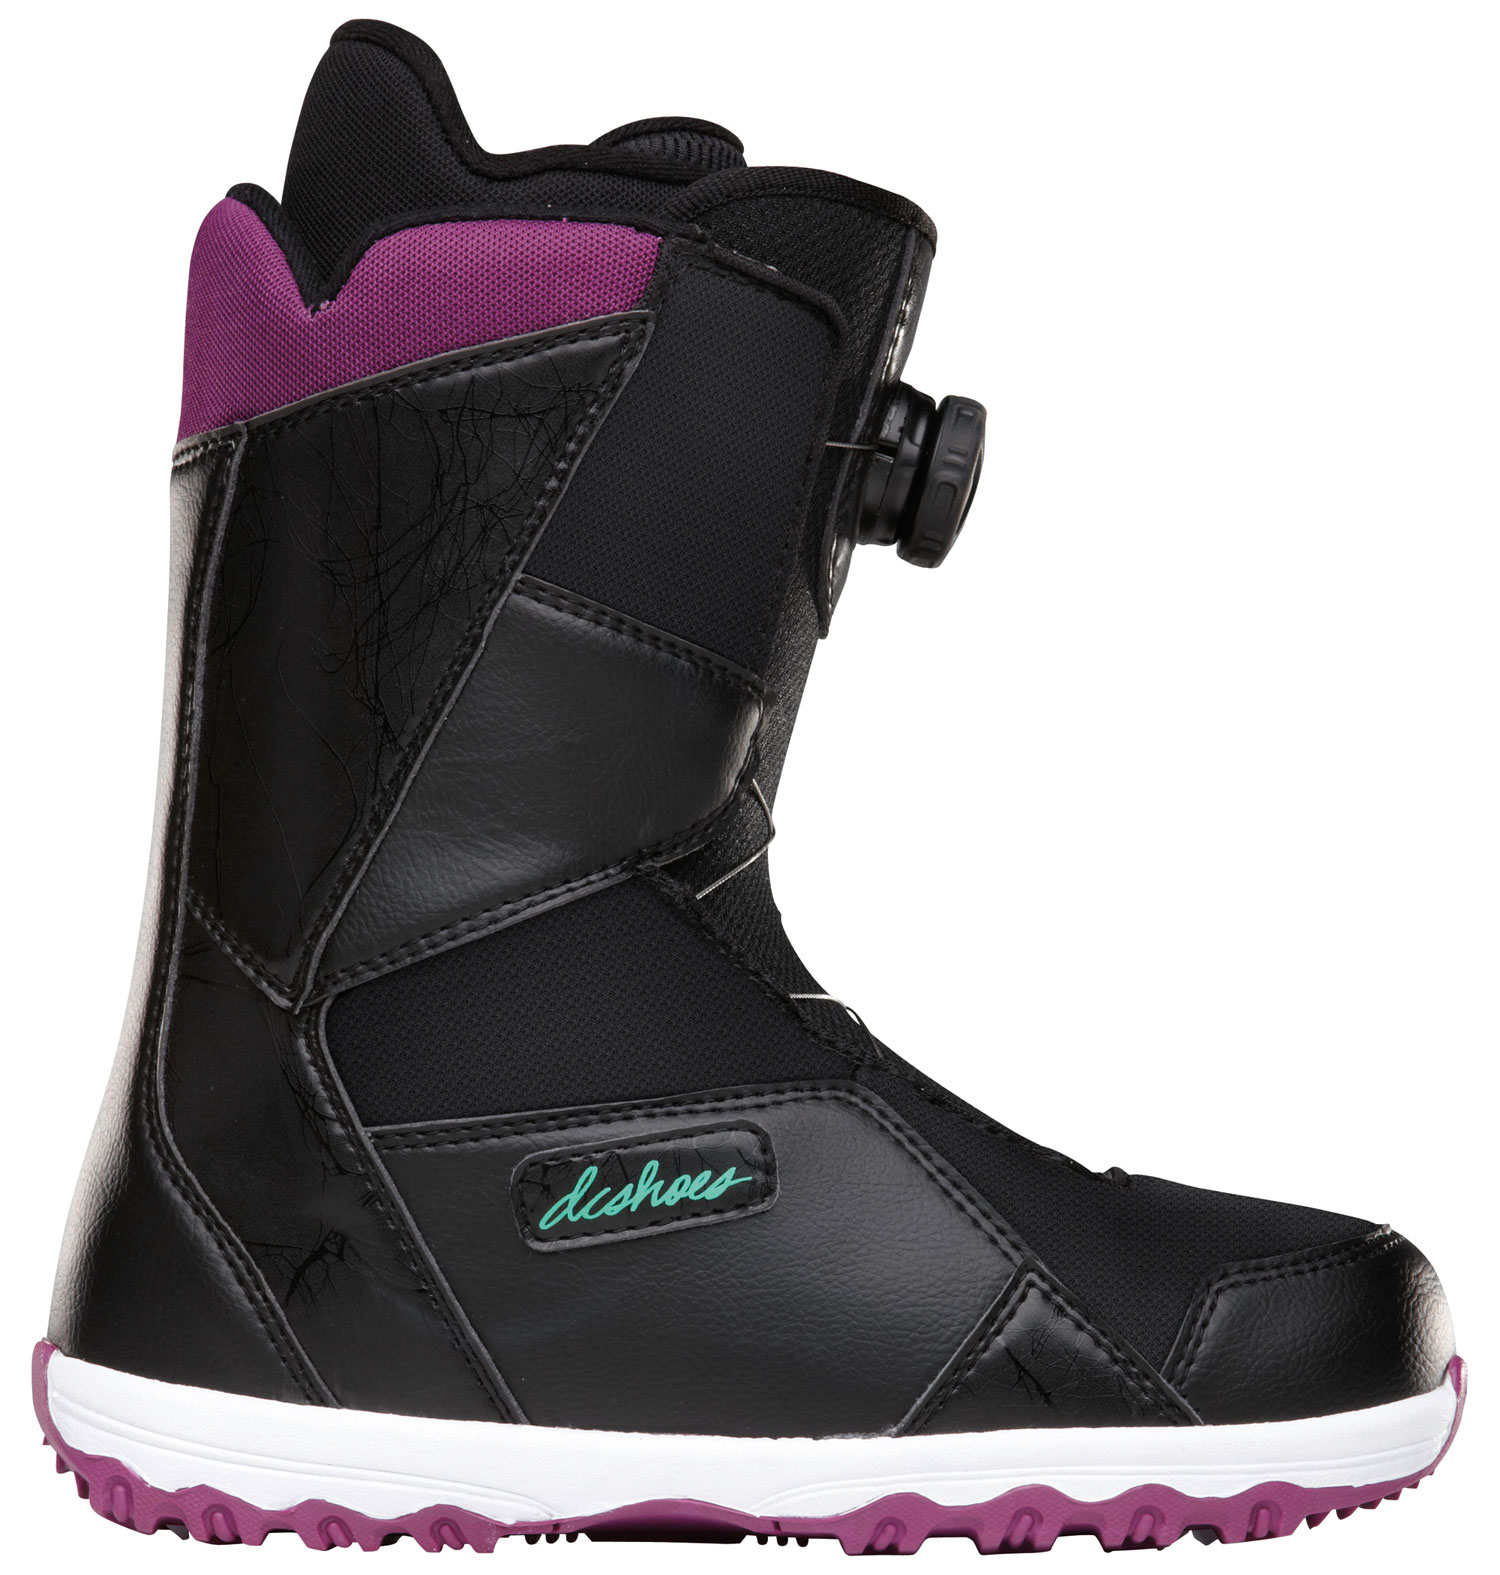 Snowboard Slim, warm, and comfortable are what make the search one of dc's most popular boot in the women's line.Key Features of the DC Search BOA Snowboard Boots: Flex: 5 Boa Coiler Low Profile Command Liner: multi density zones, aegis, lace closure, anatomical J-bars - $125.95